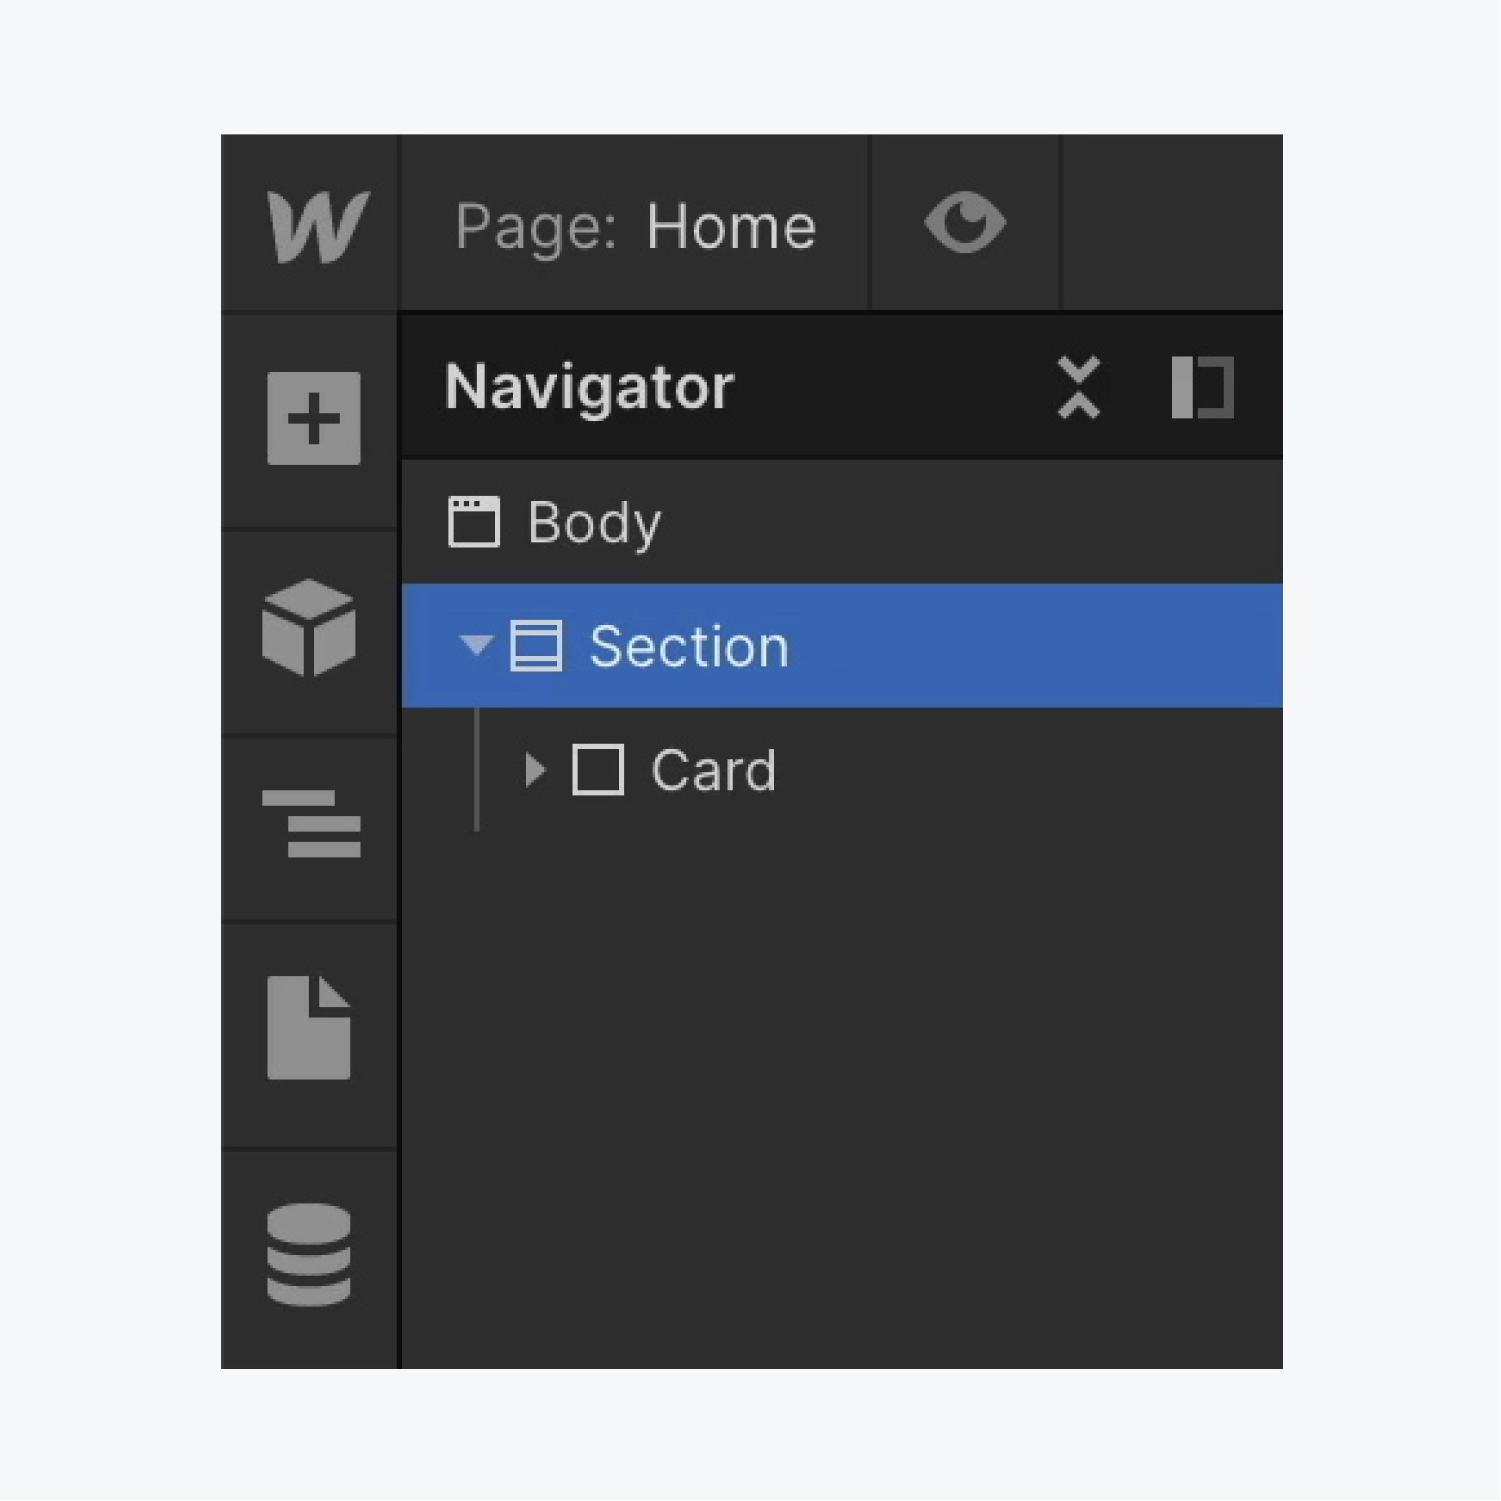 A Section is selected in the Webflow Navigator.